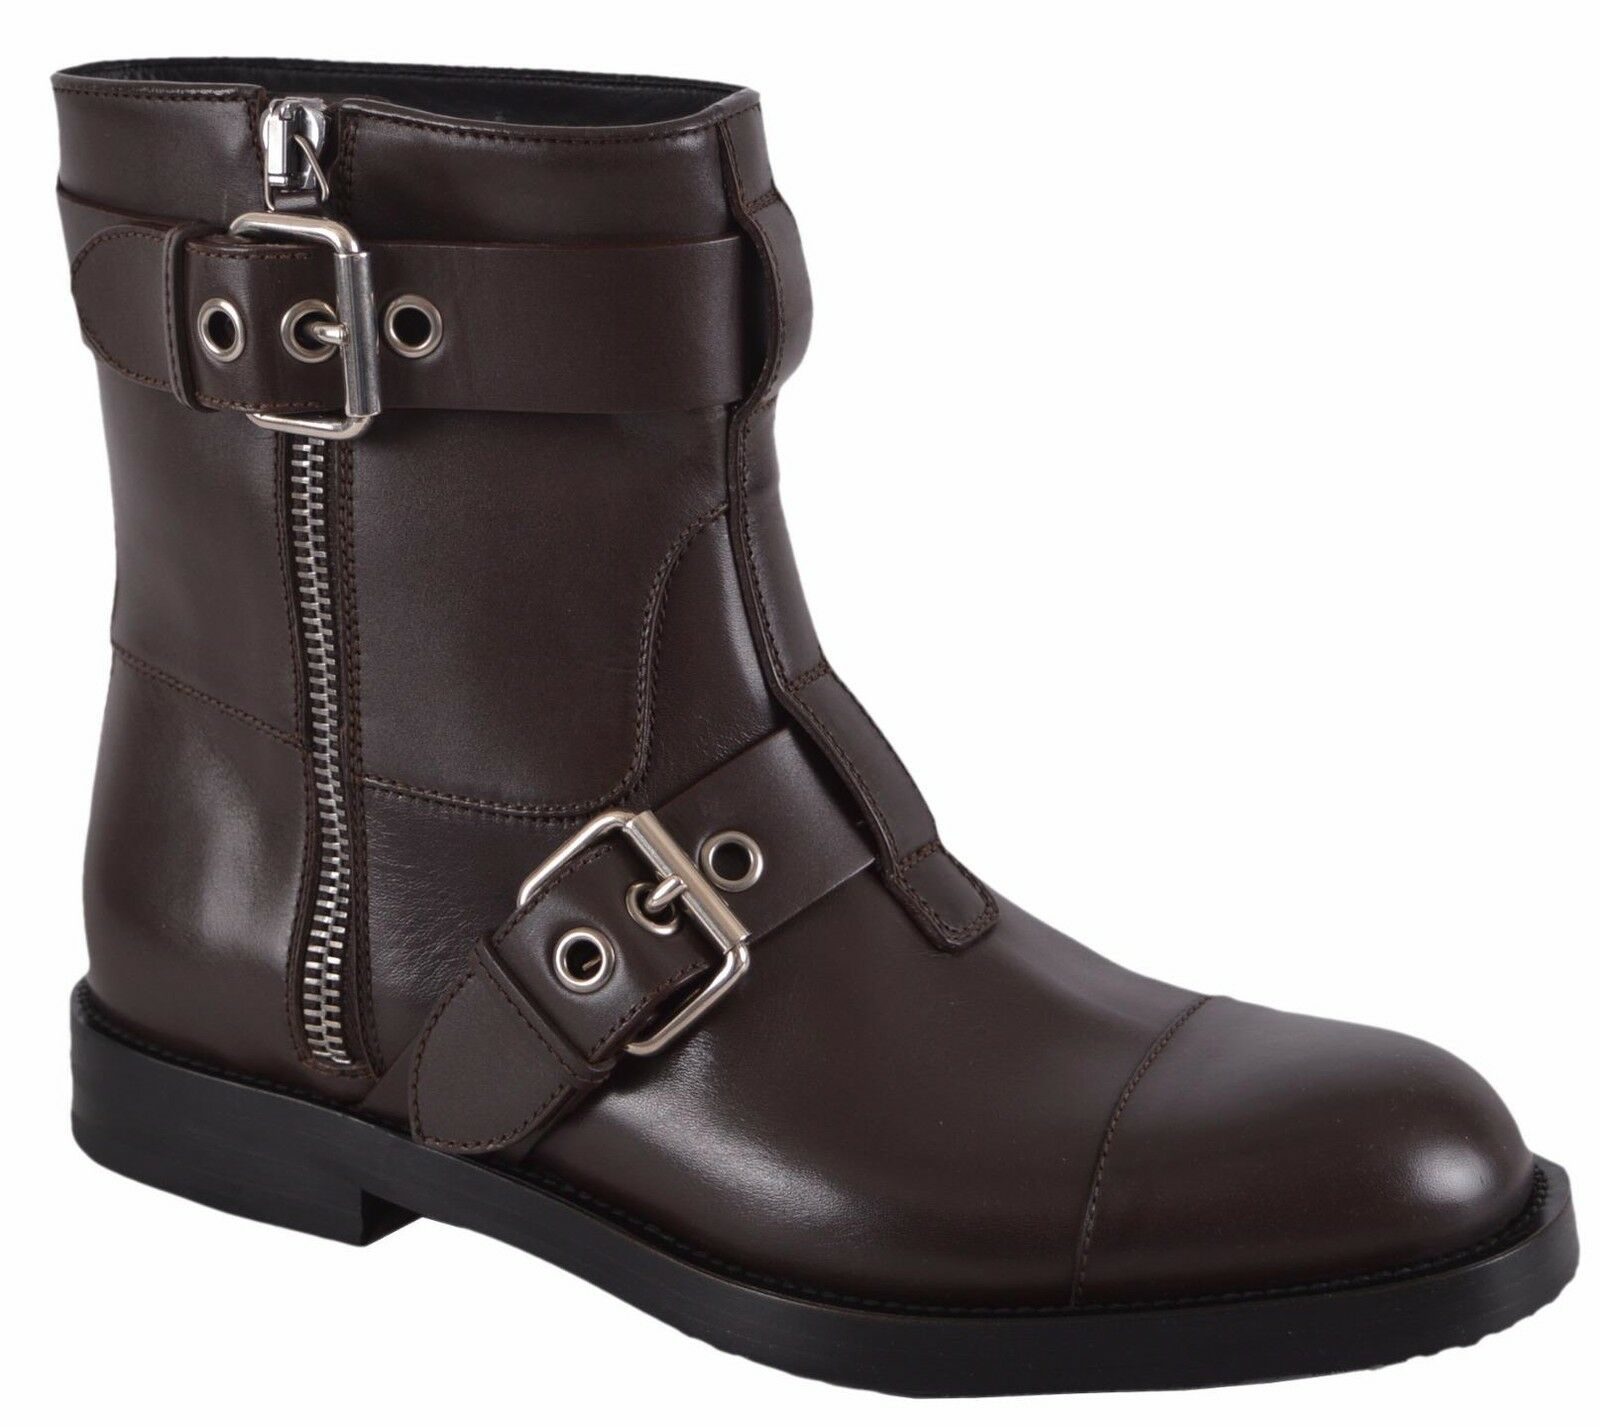 NEW Gucci Men's 368430 $1,095 Leather Sella Ankle Biker Boots Shoes 13 G 14 US